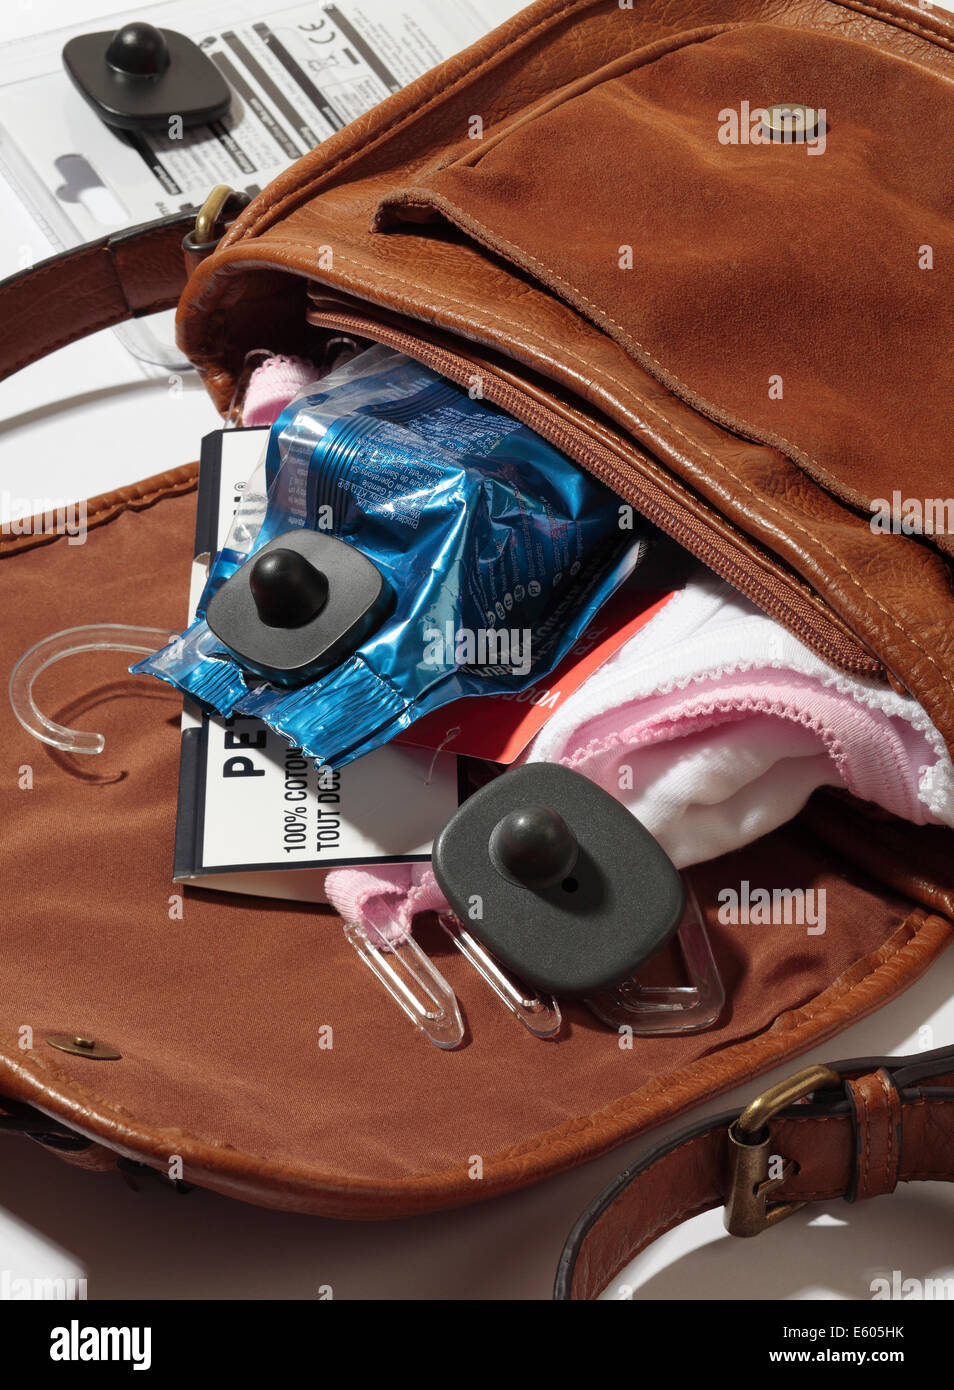 Shoplifting. Security tags attached to stolen items. - Stock Image